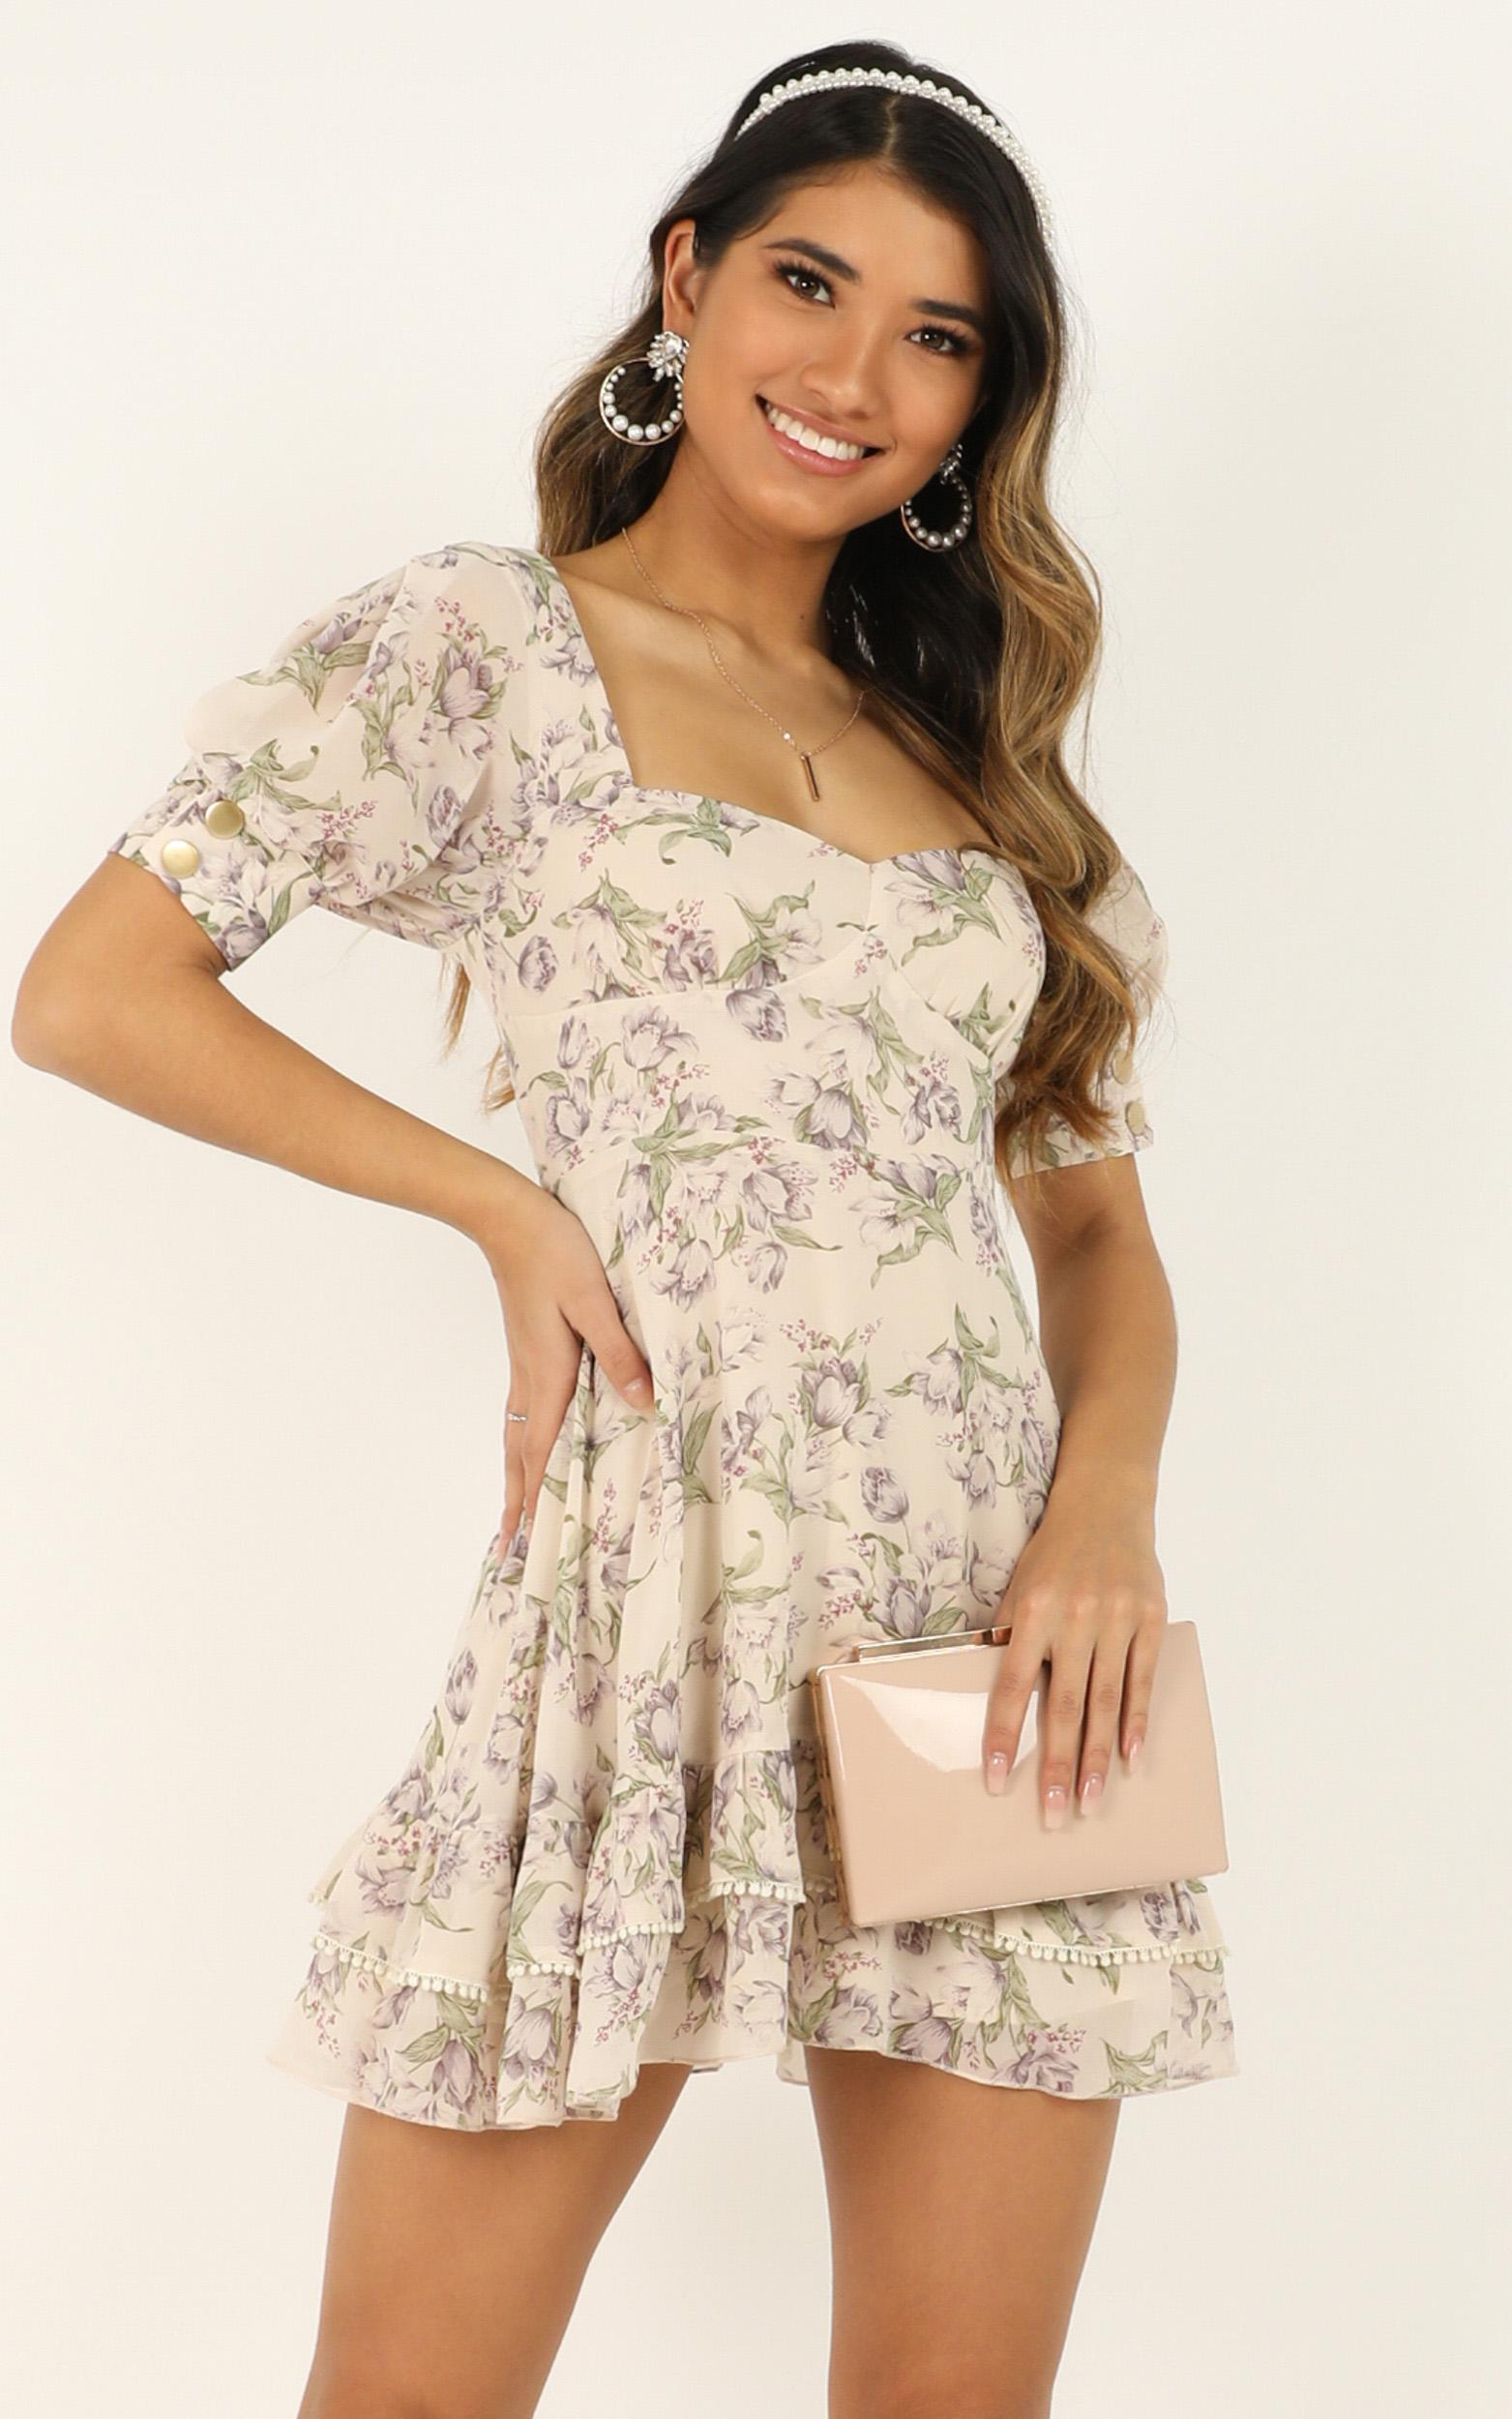 And It Makes Me Wonder Dress In cream floral - 8 (S), Cream, hi-res image number null